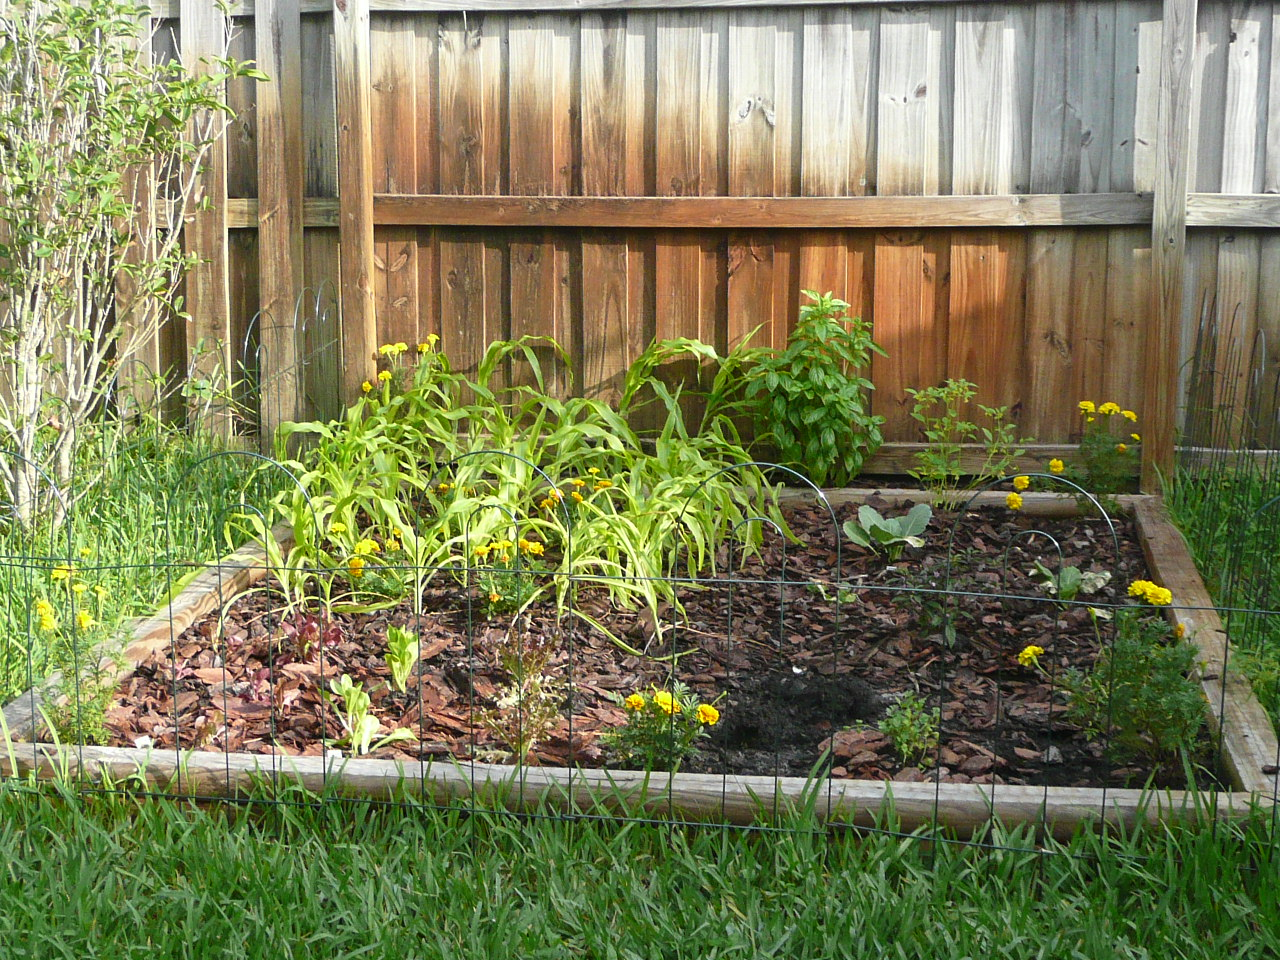 Gardening south florida style september 2011 - South florida vegetable gardening ...